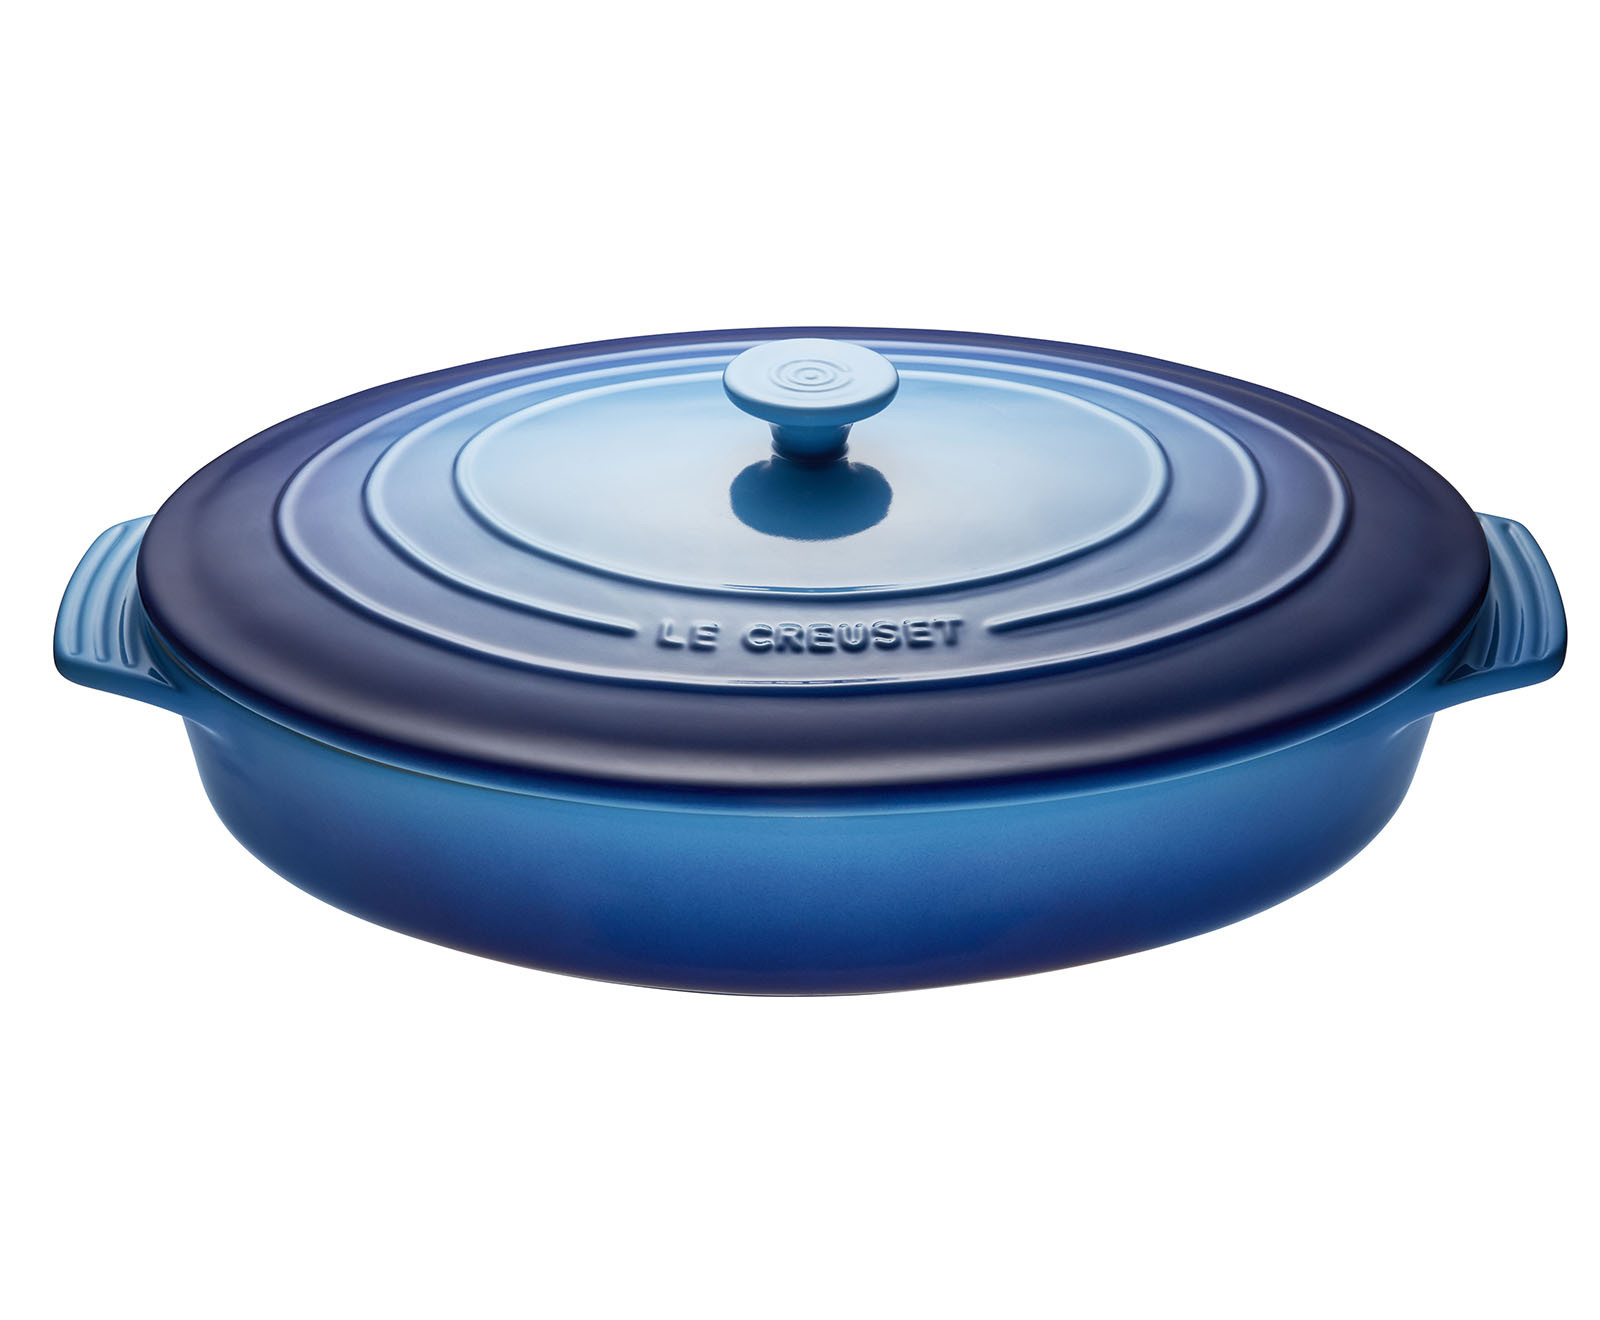 Le Creuset Oval Casserole with Lid 3.5L | Blueberry